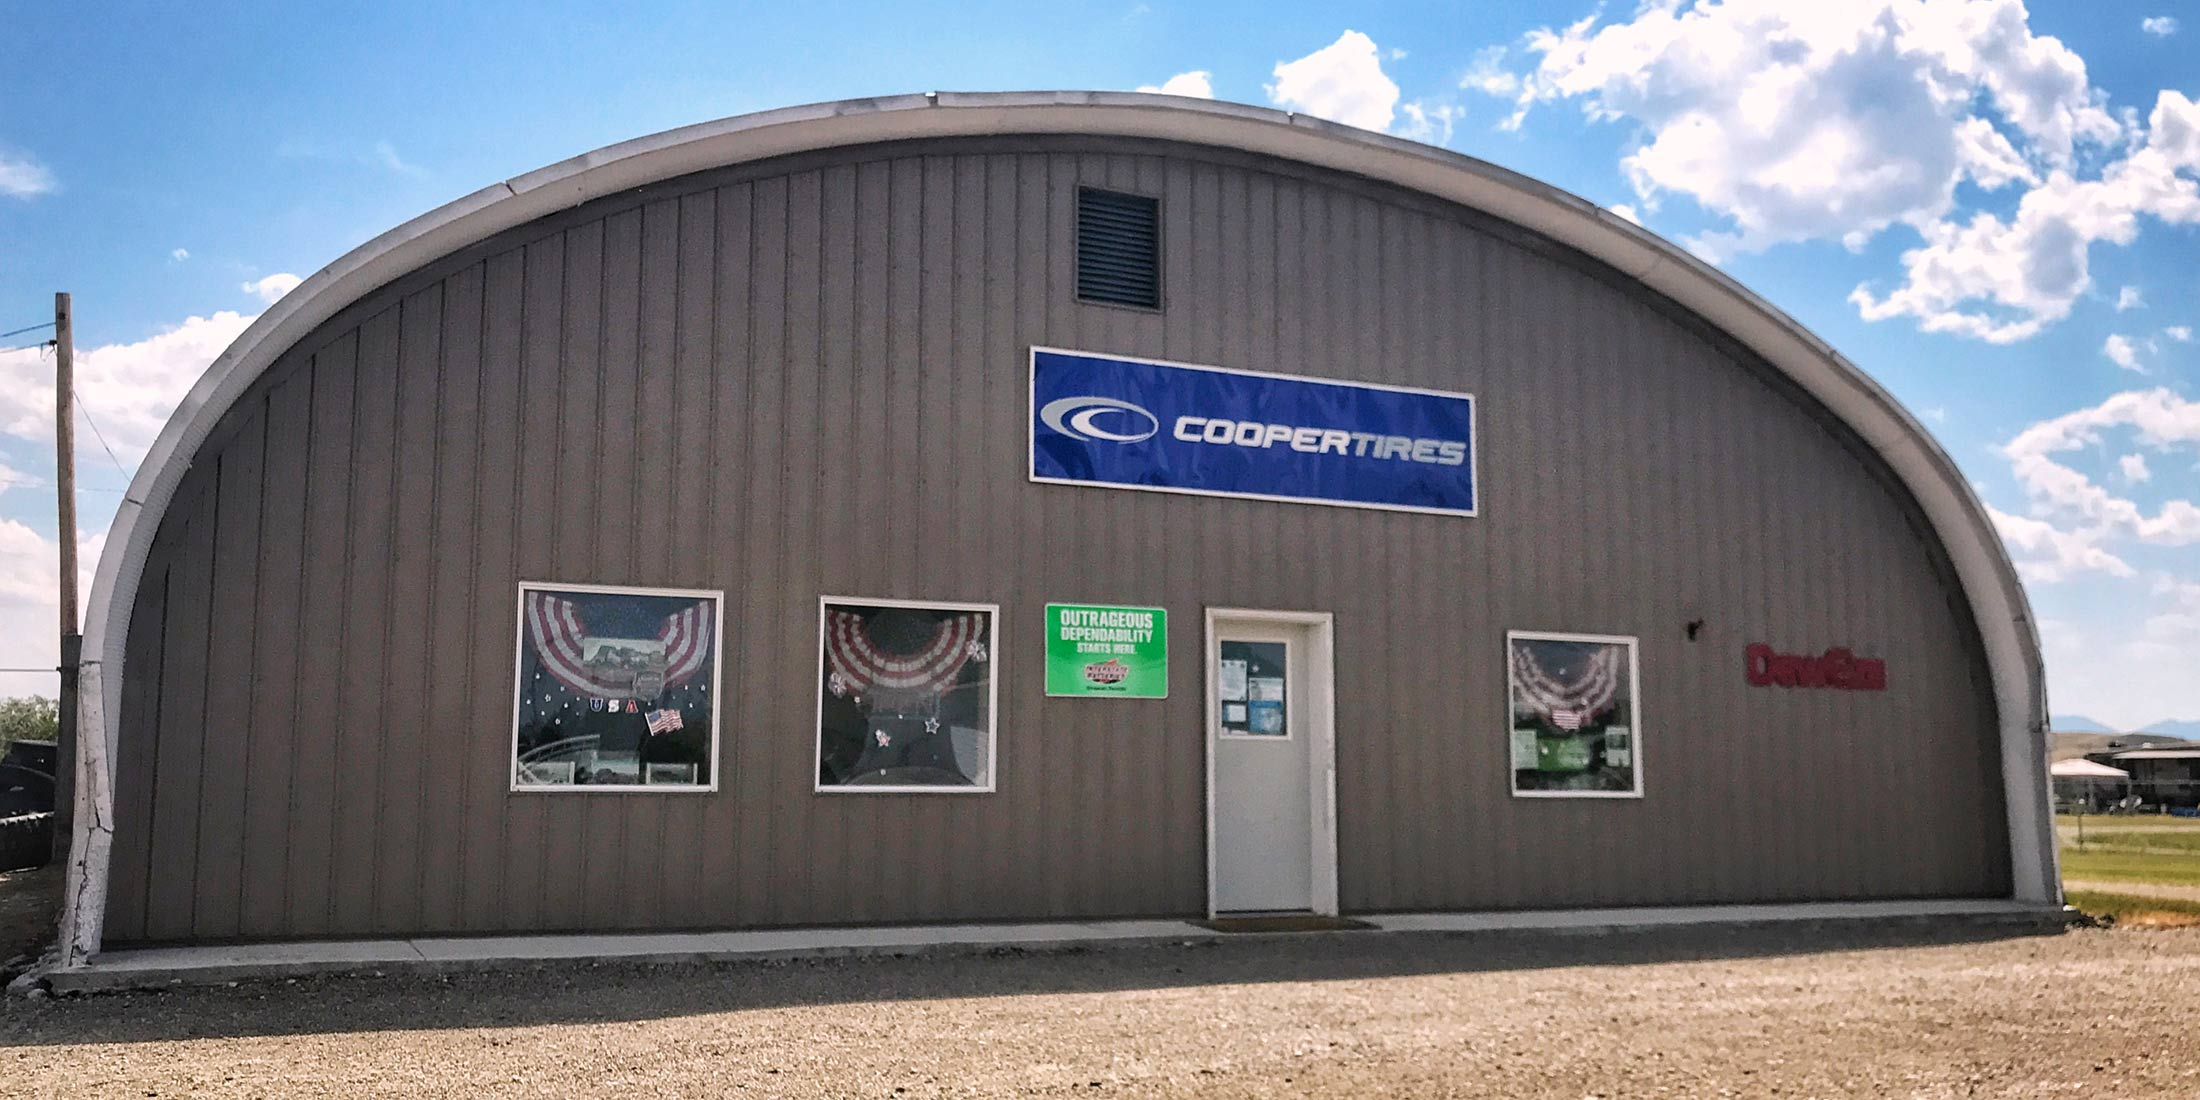 Stop into Wheatland Services Cooper Tires for all your tire needs. Located along Highway 12 in Harlowton, Montana - Wheatland County.